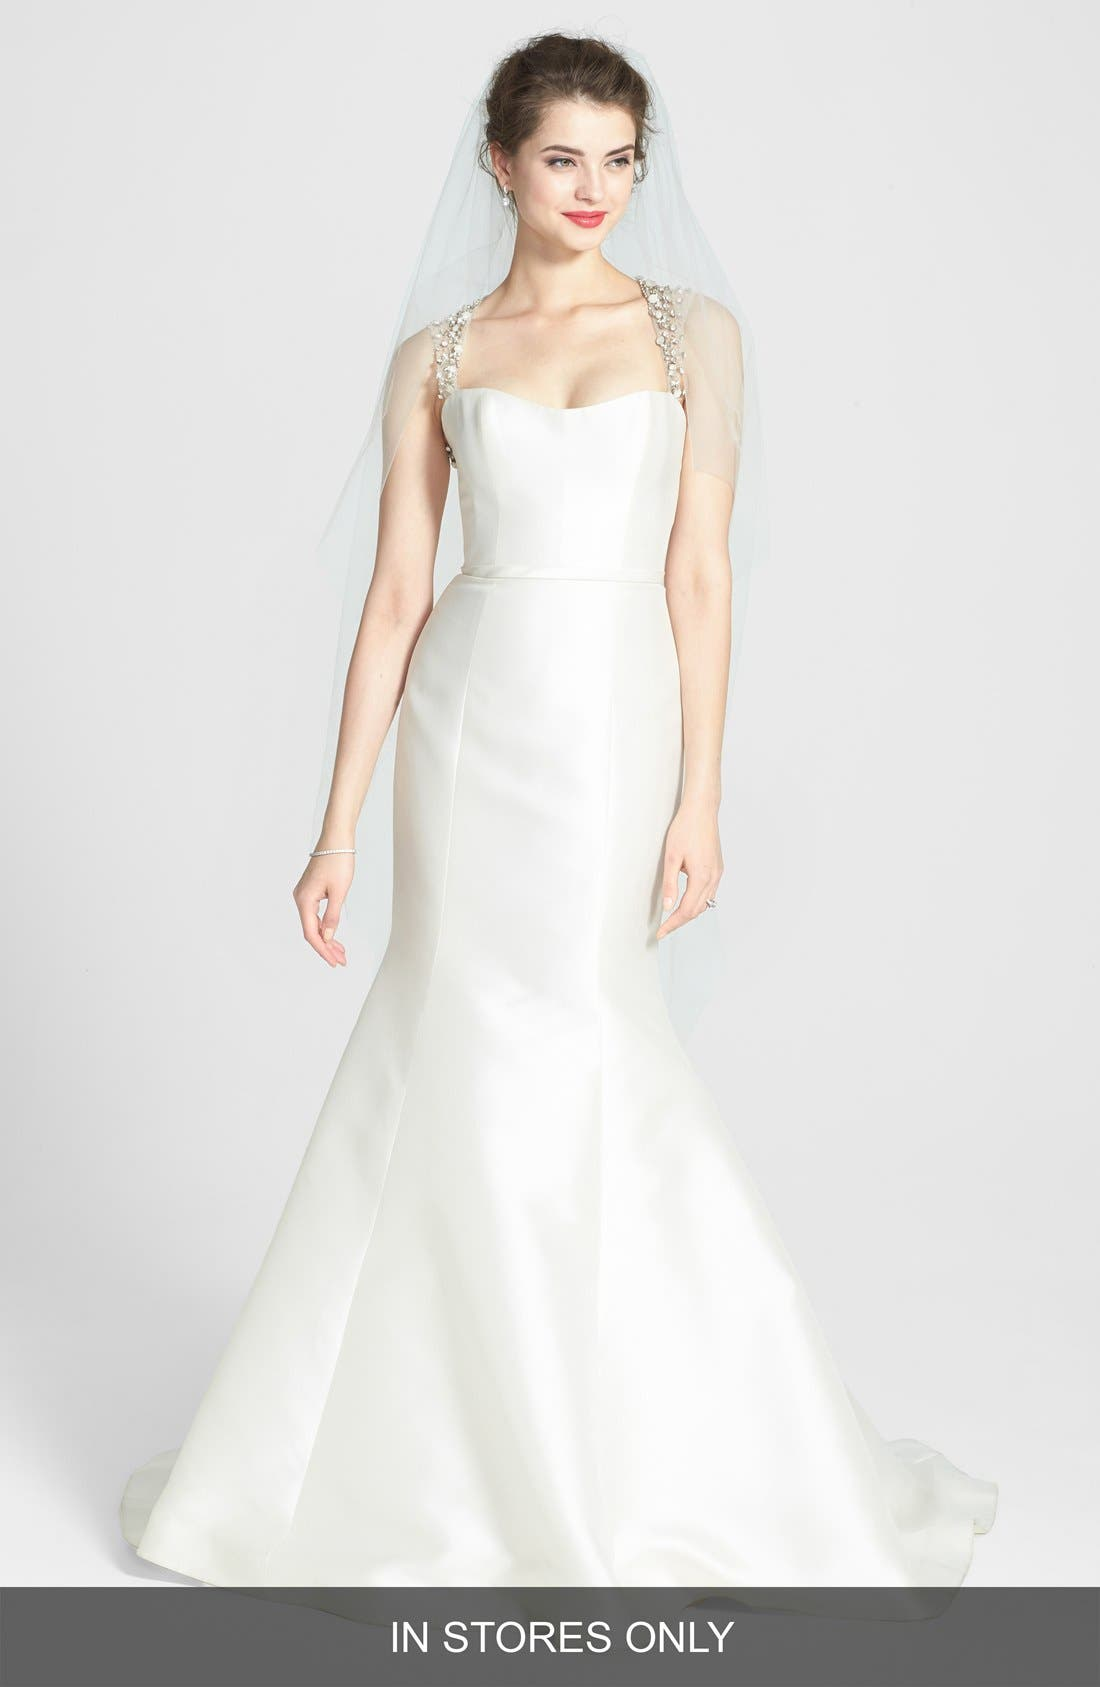 Alternate Image 1 Selected - Amsale 'Lenox' Beaded Illusion Strap Silk Blend Trumpet Dress (In Stores Only)